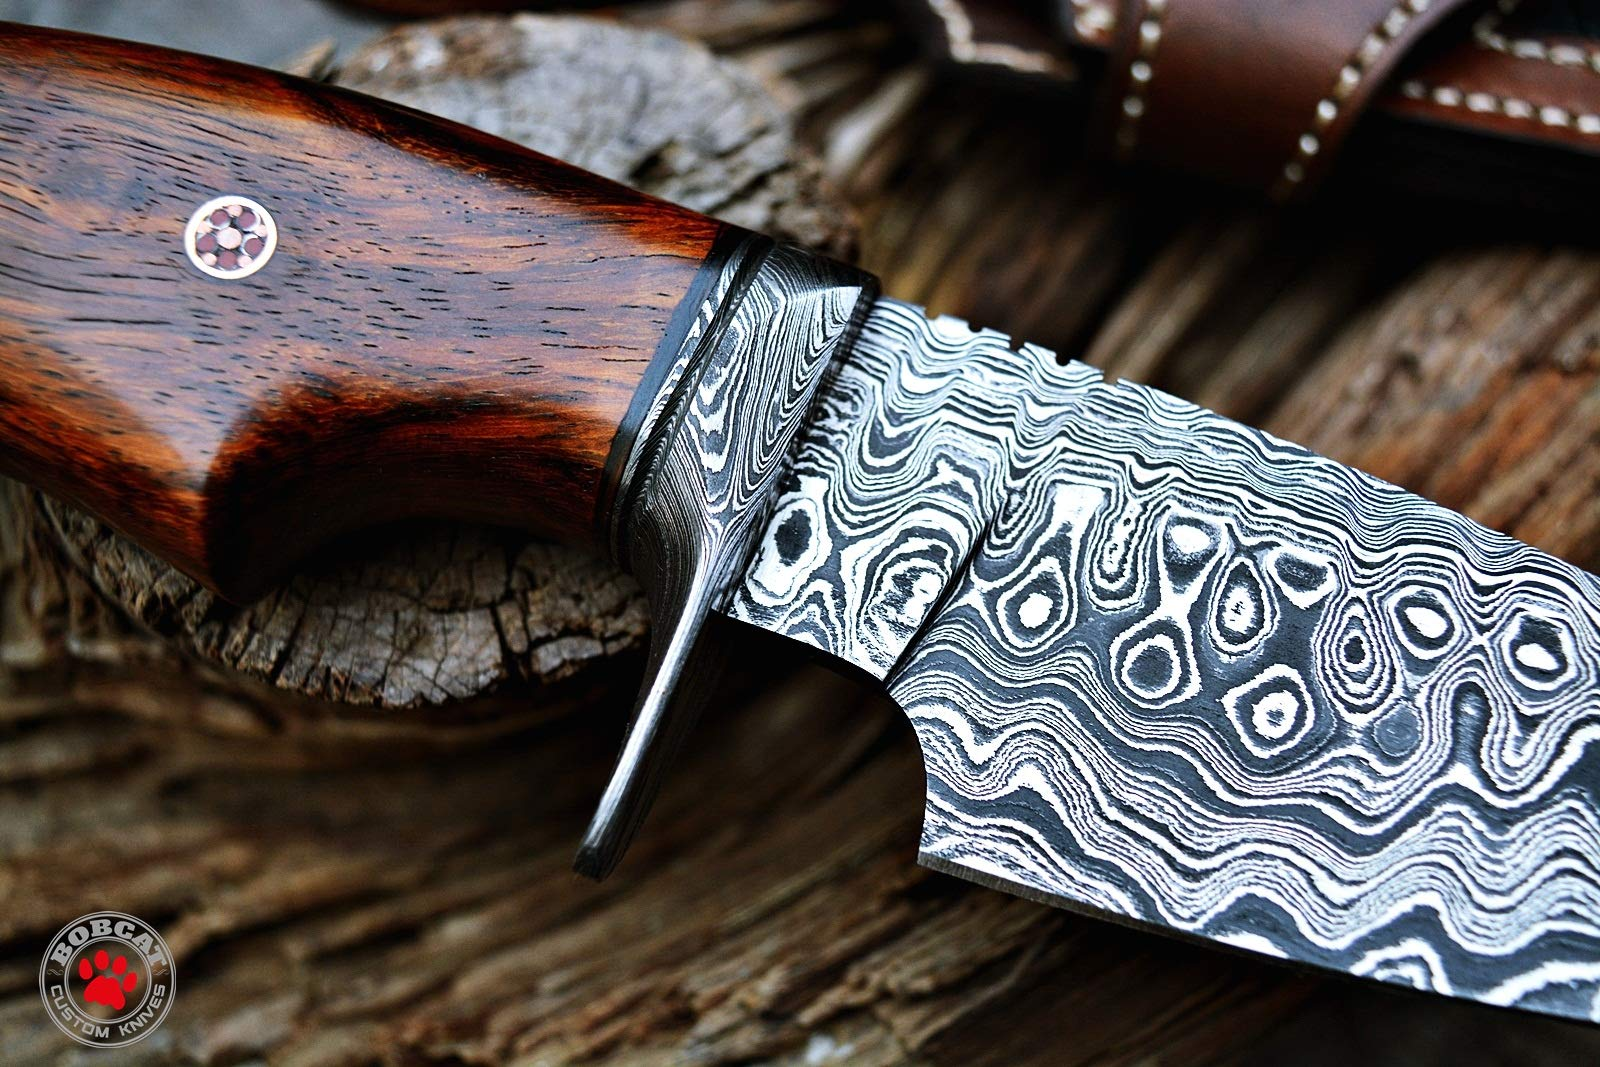 Custom Handmade Hunting Knife Bowie Knife Damascus Steel Survival Knife EDC 10'' Overall Walnut Wood with Sheath by Bobcat Knives (Image #3)